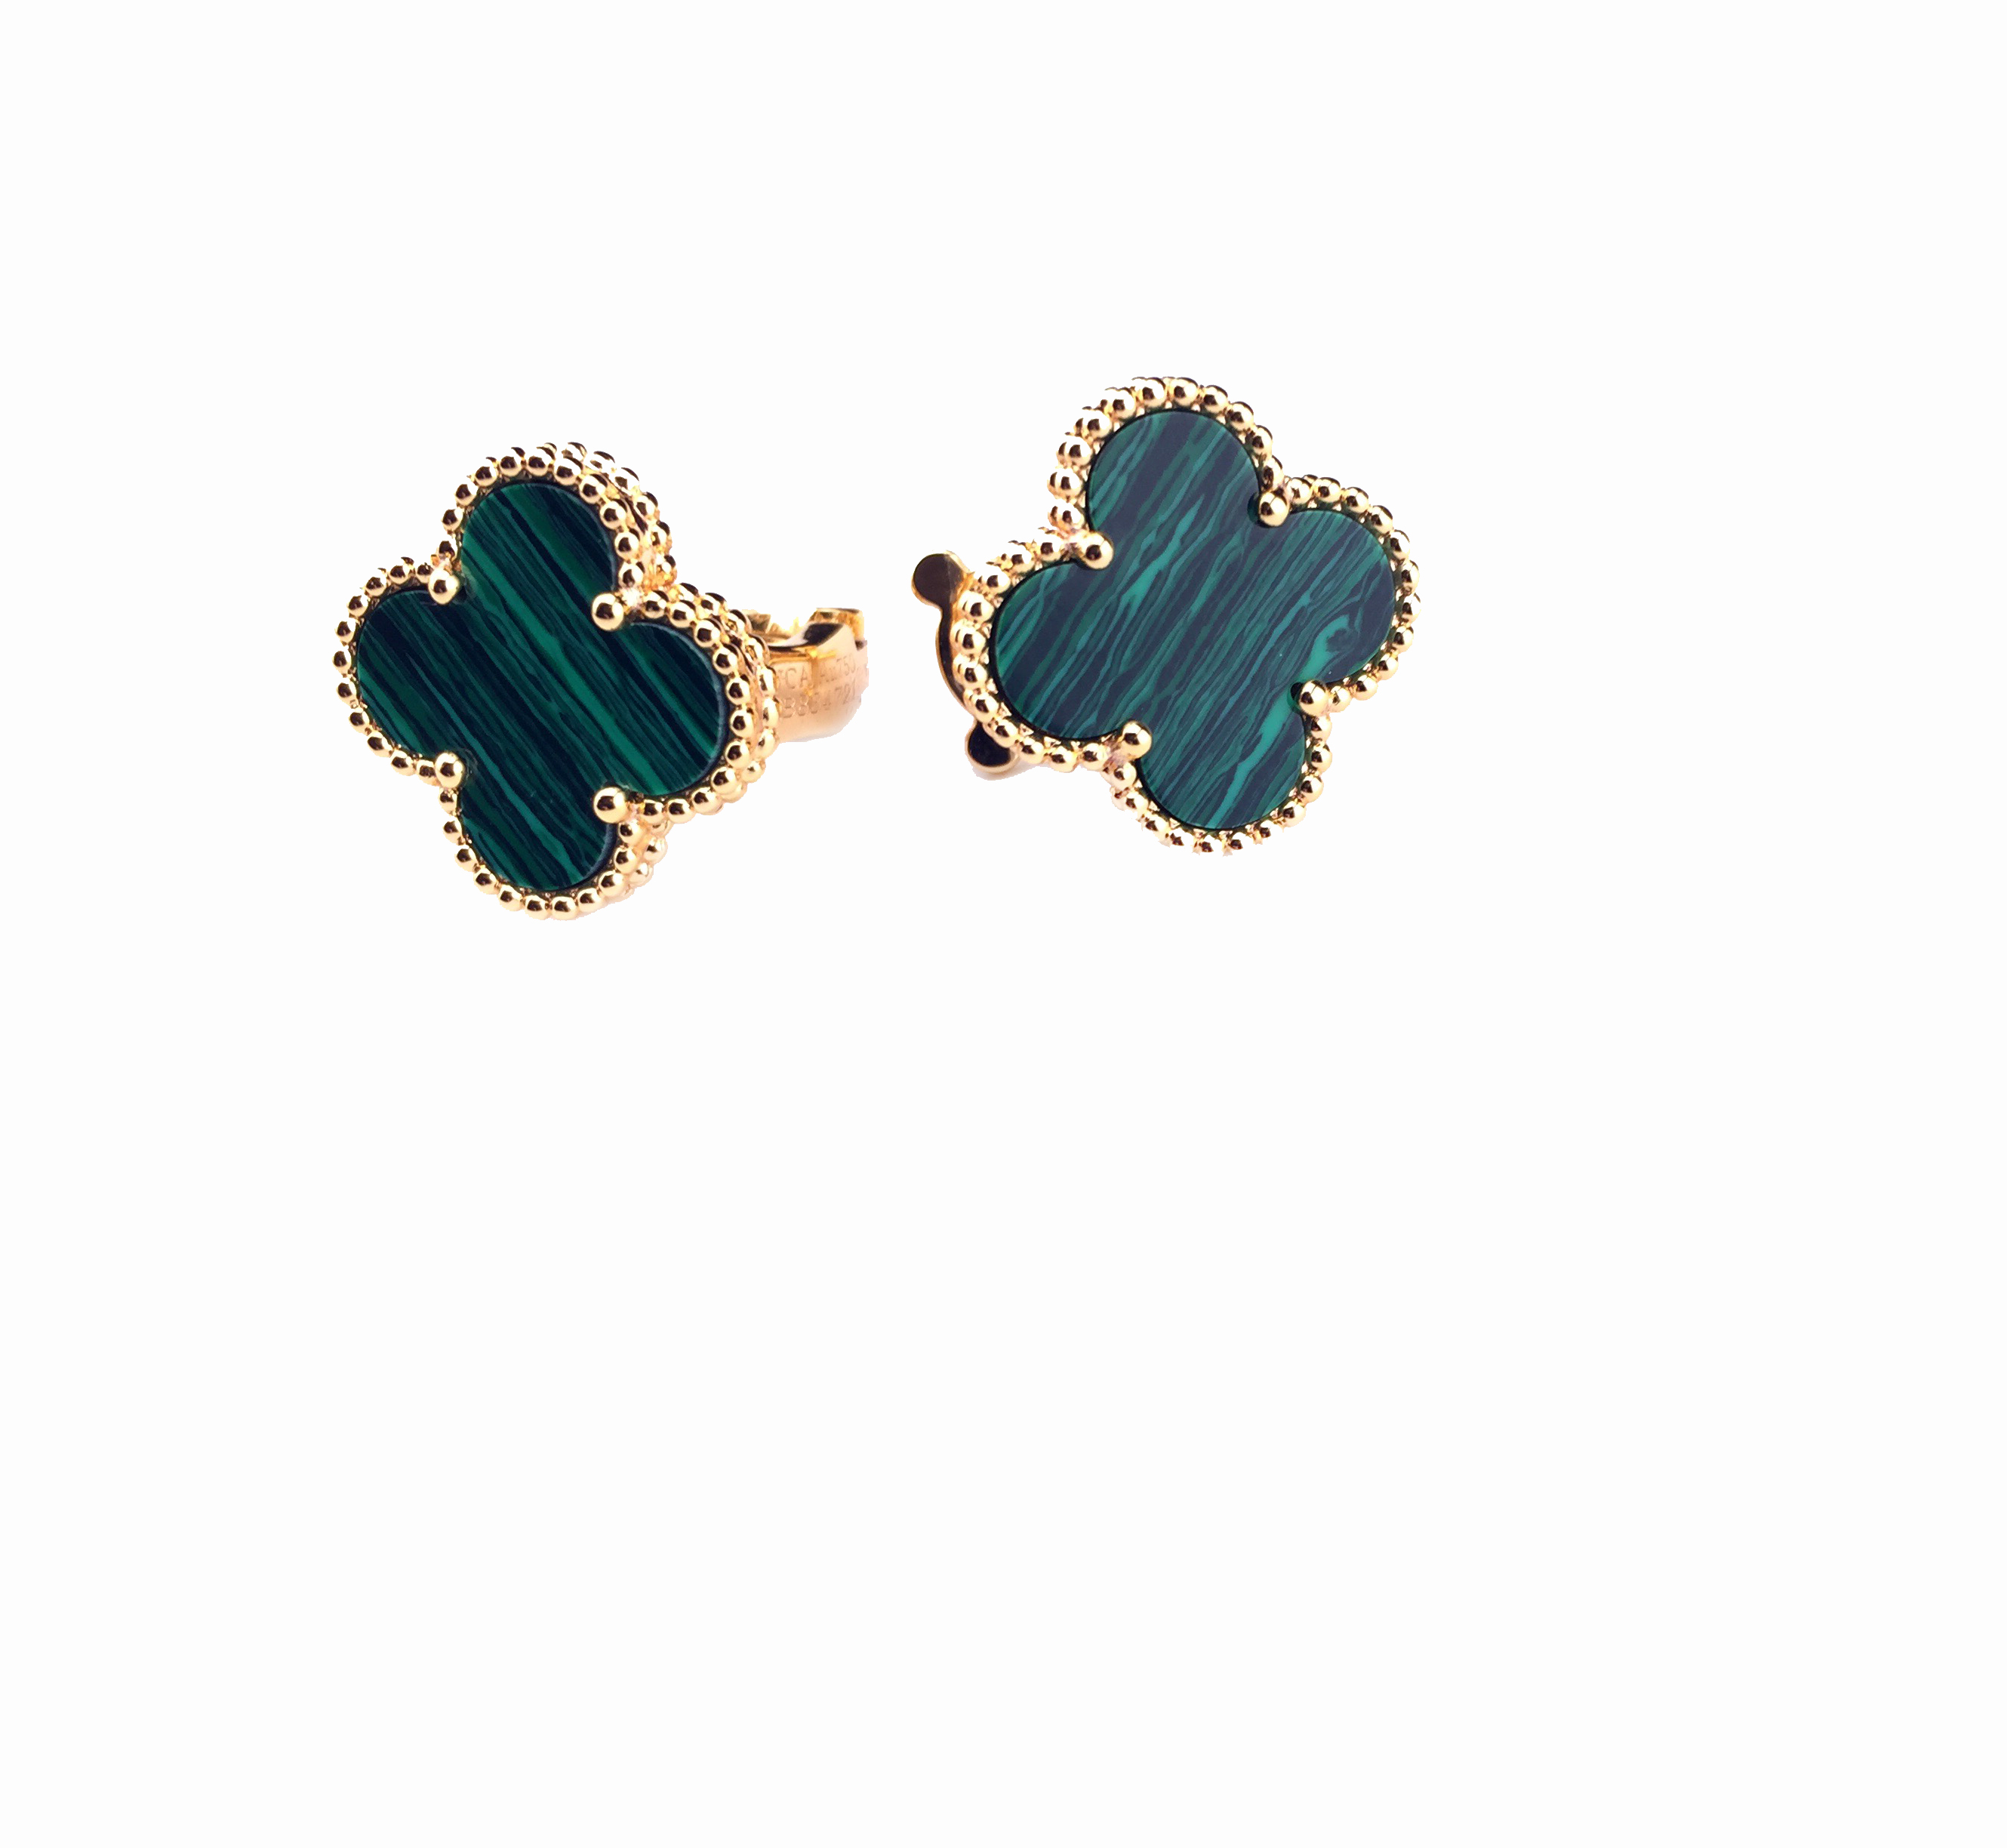 high product kingman earrings by grade turquoise with supplee gold yellow donsuppleeearrings don